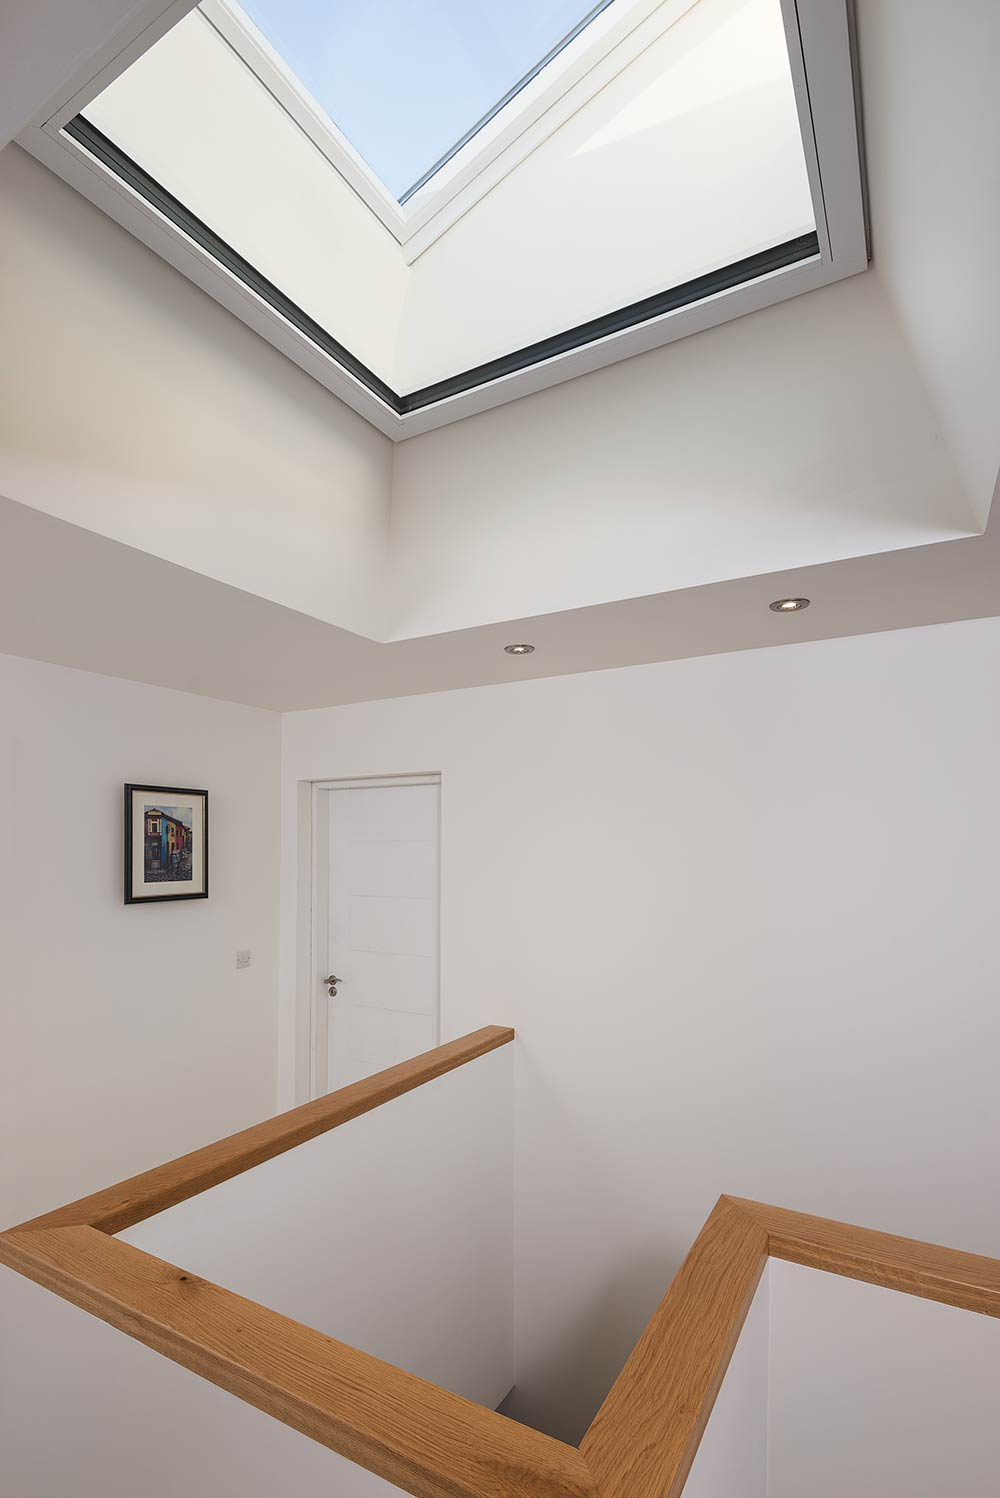 The house features a double-glazed Velux roof window for natural light, with a triple-glazed Munster Joinery Passiv Aluclad window lying horizontal underneath this near the top of the insulation layer